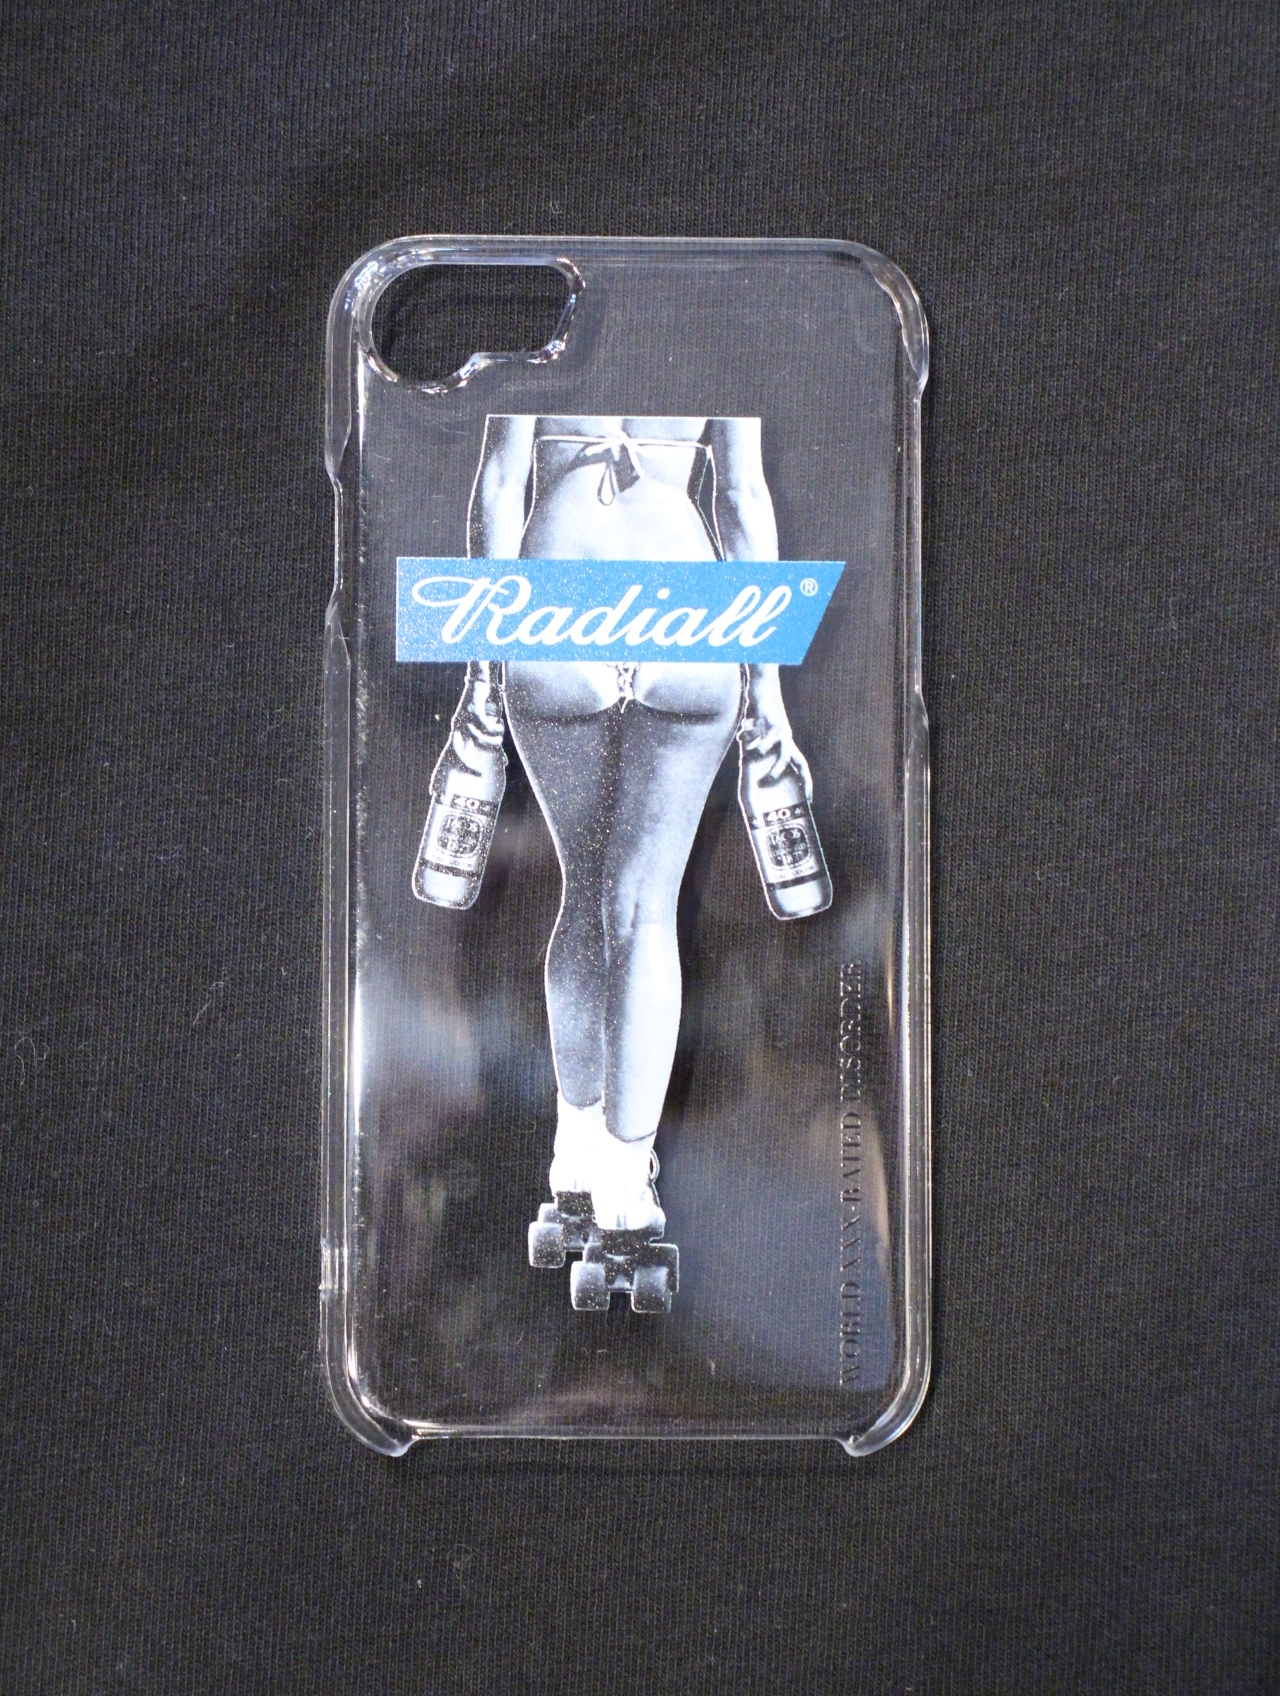 RADIALL  「FOURTY OZ LADY - IPHONE CASE for 6/6s/7/8」  iPhone  6、6s、7、8 ケース